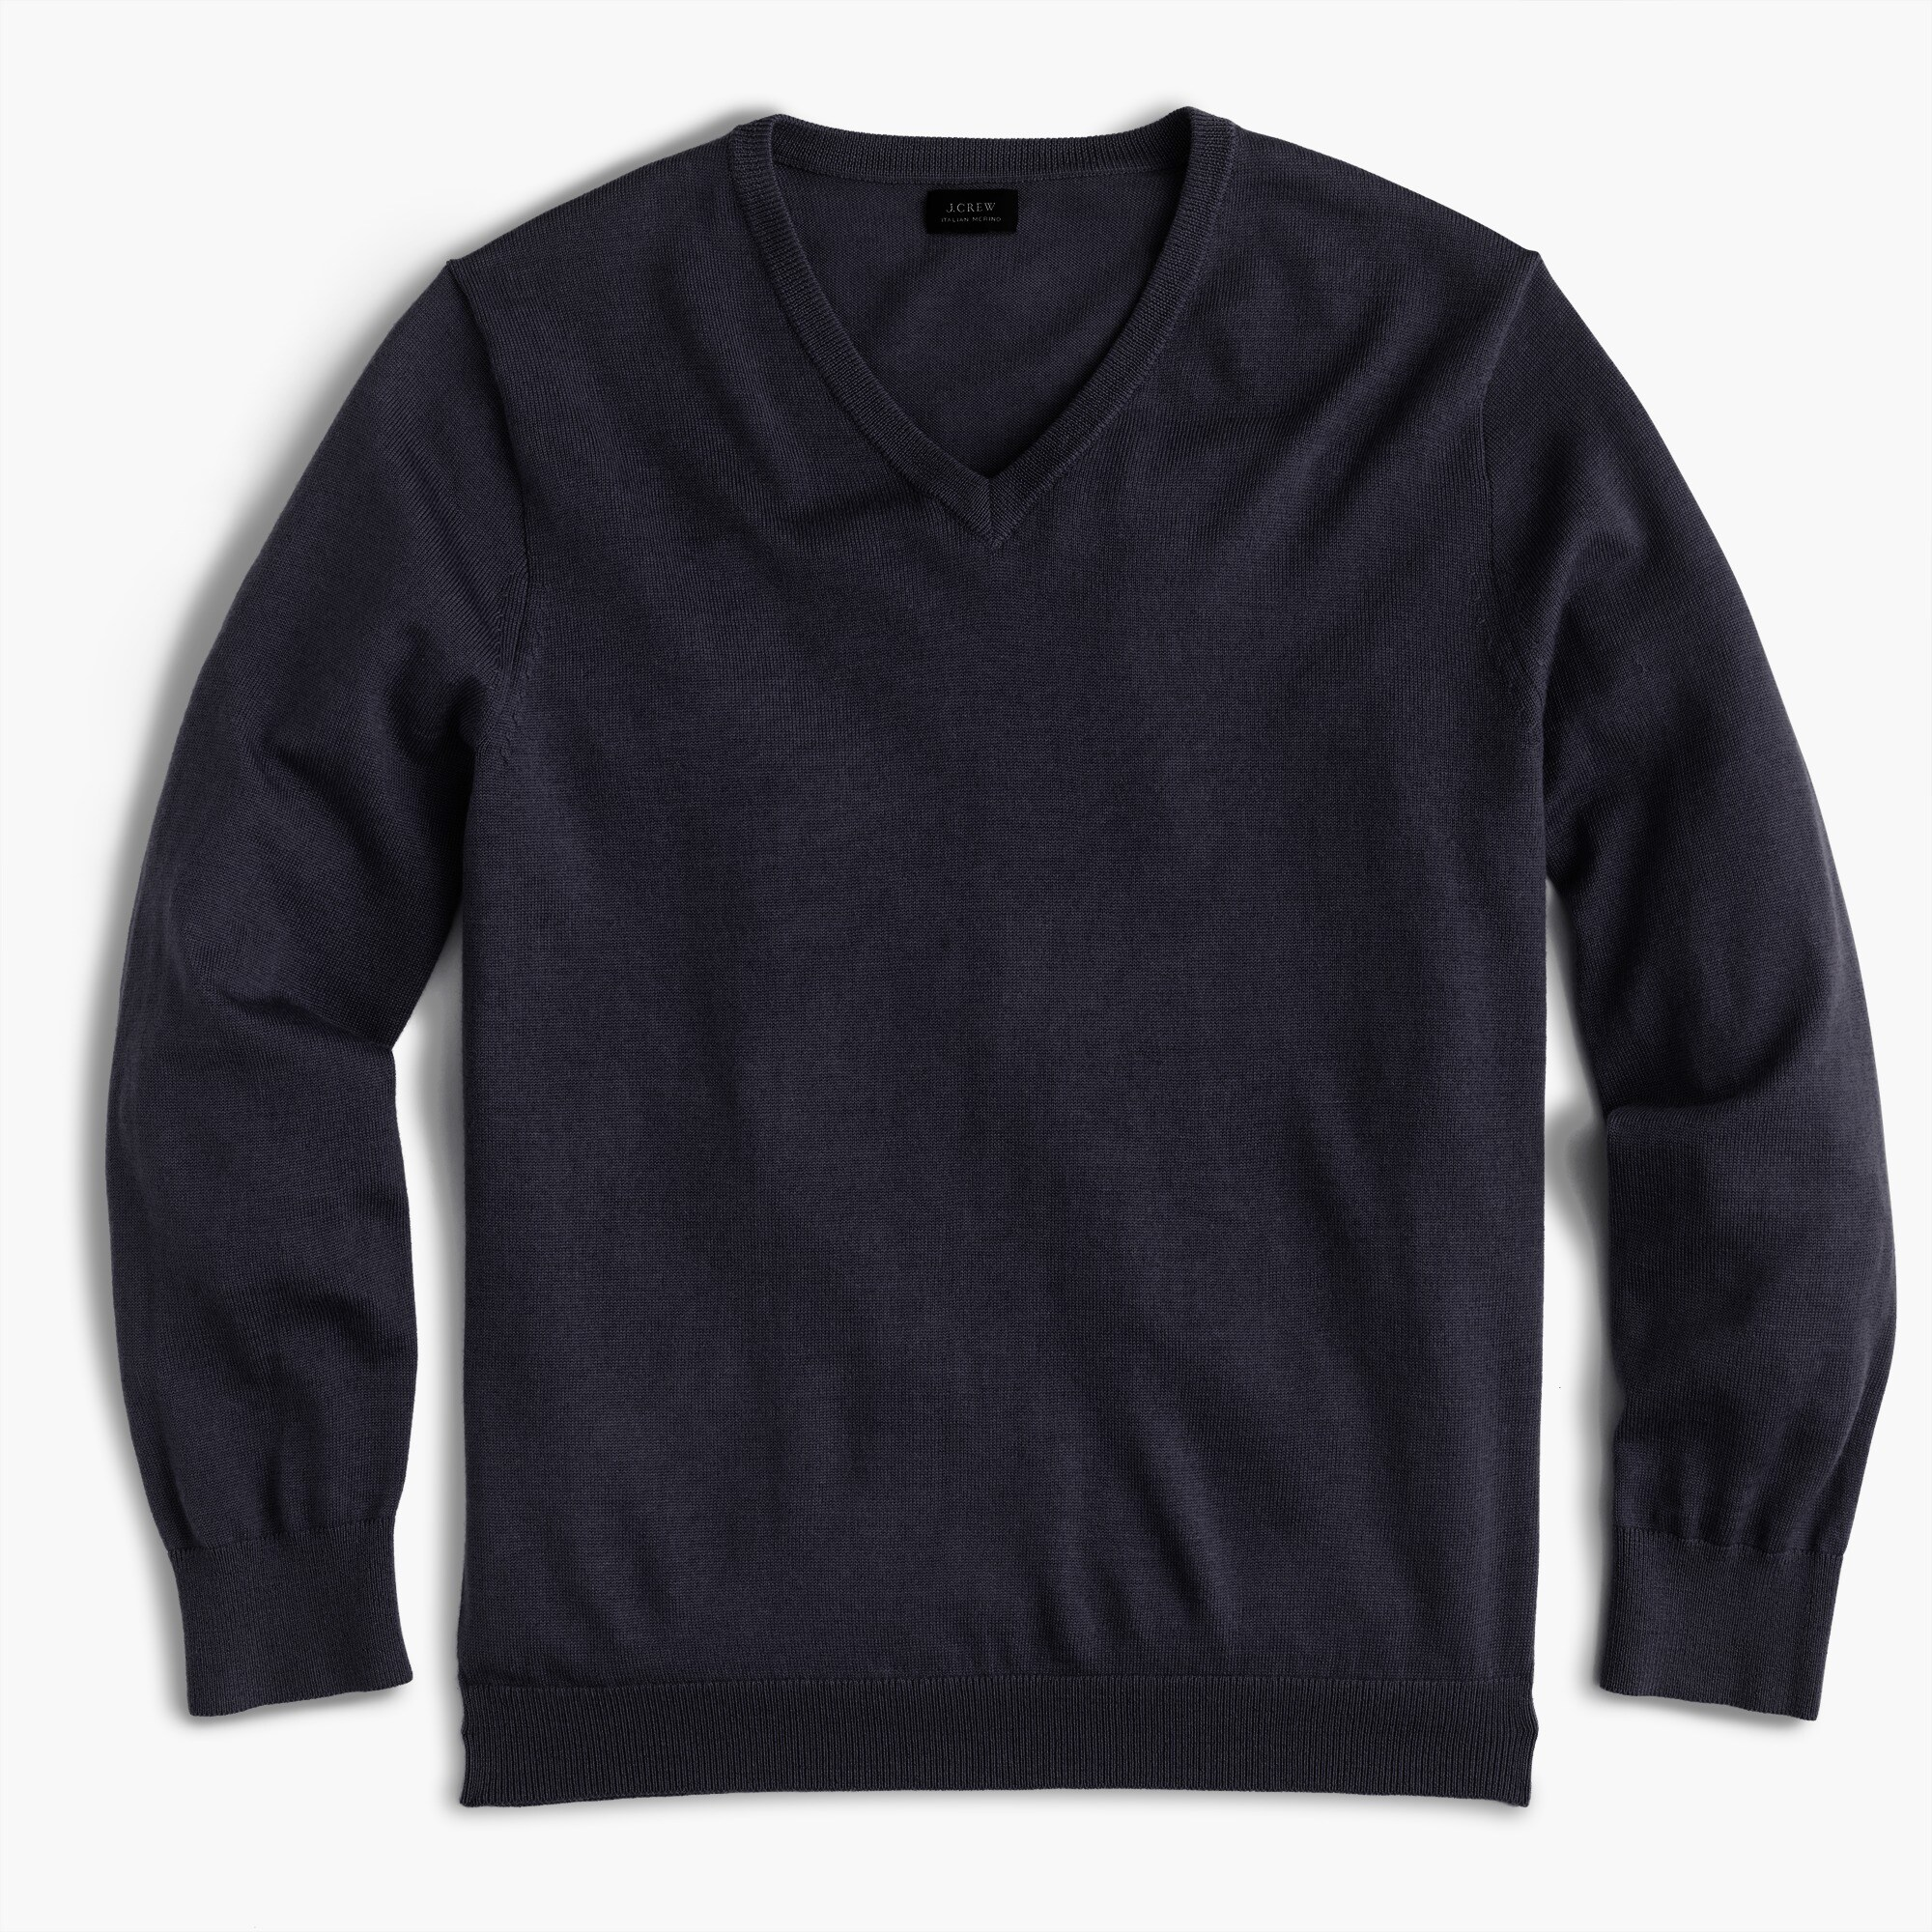 Image 2 for Slim Italian merino wool V-neck sweater